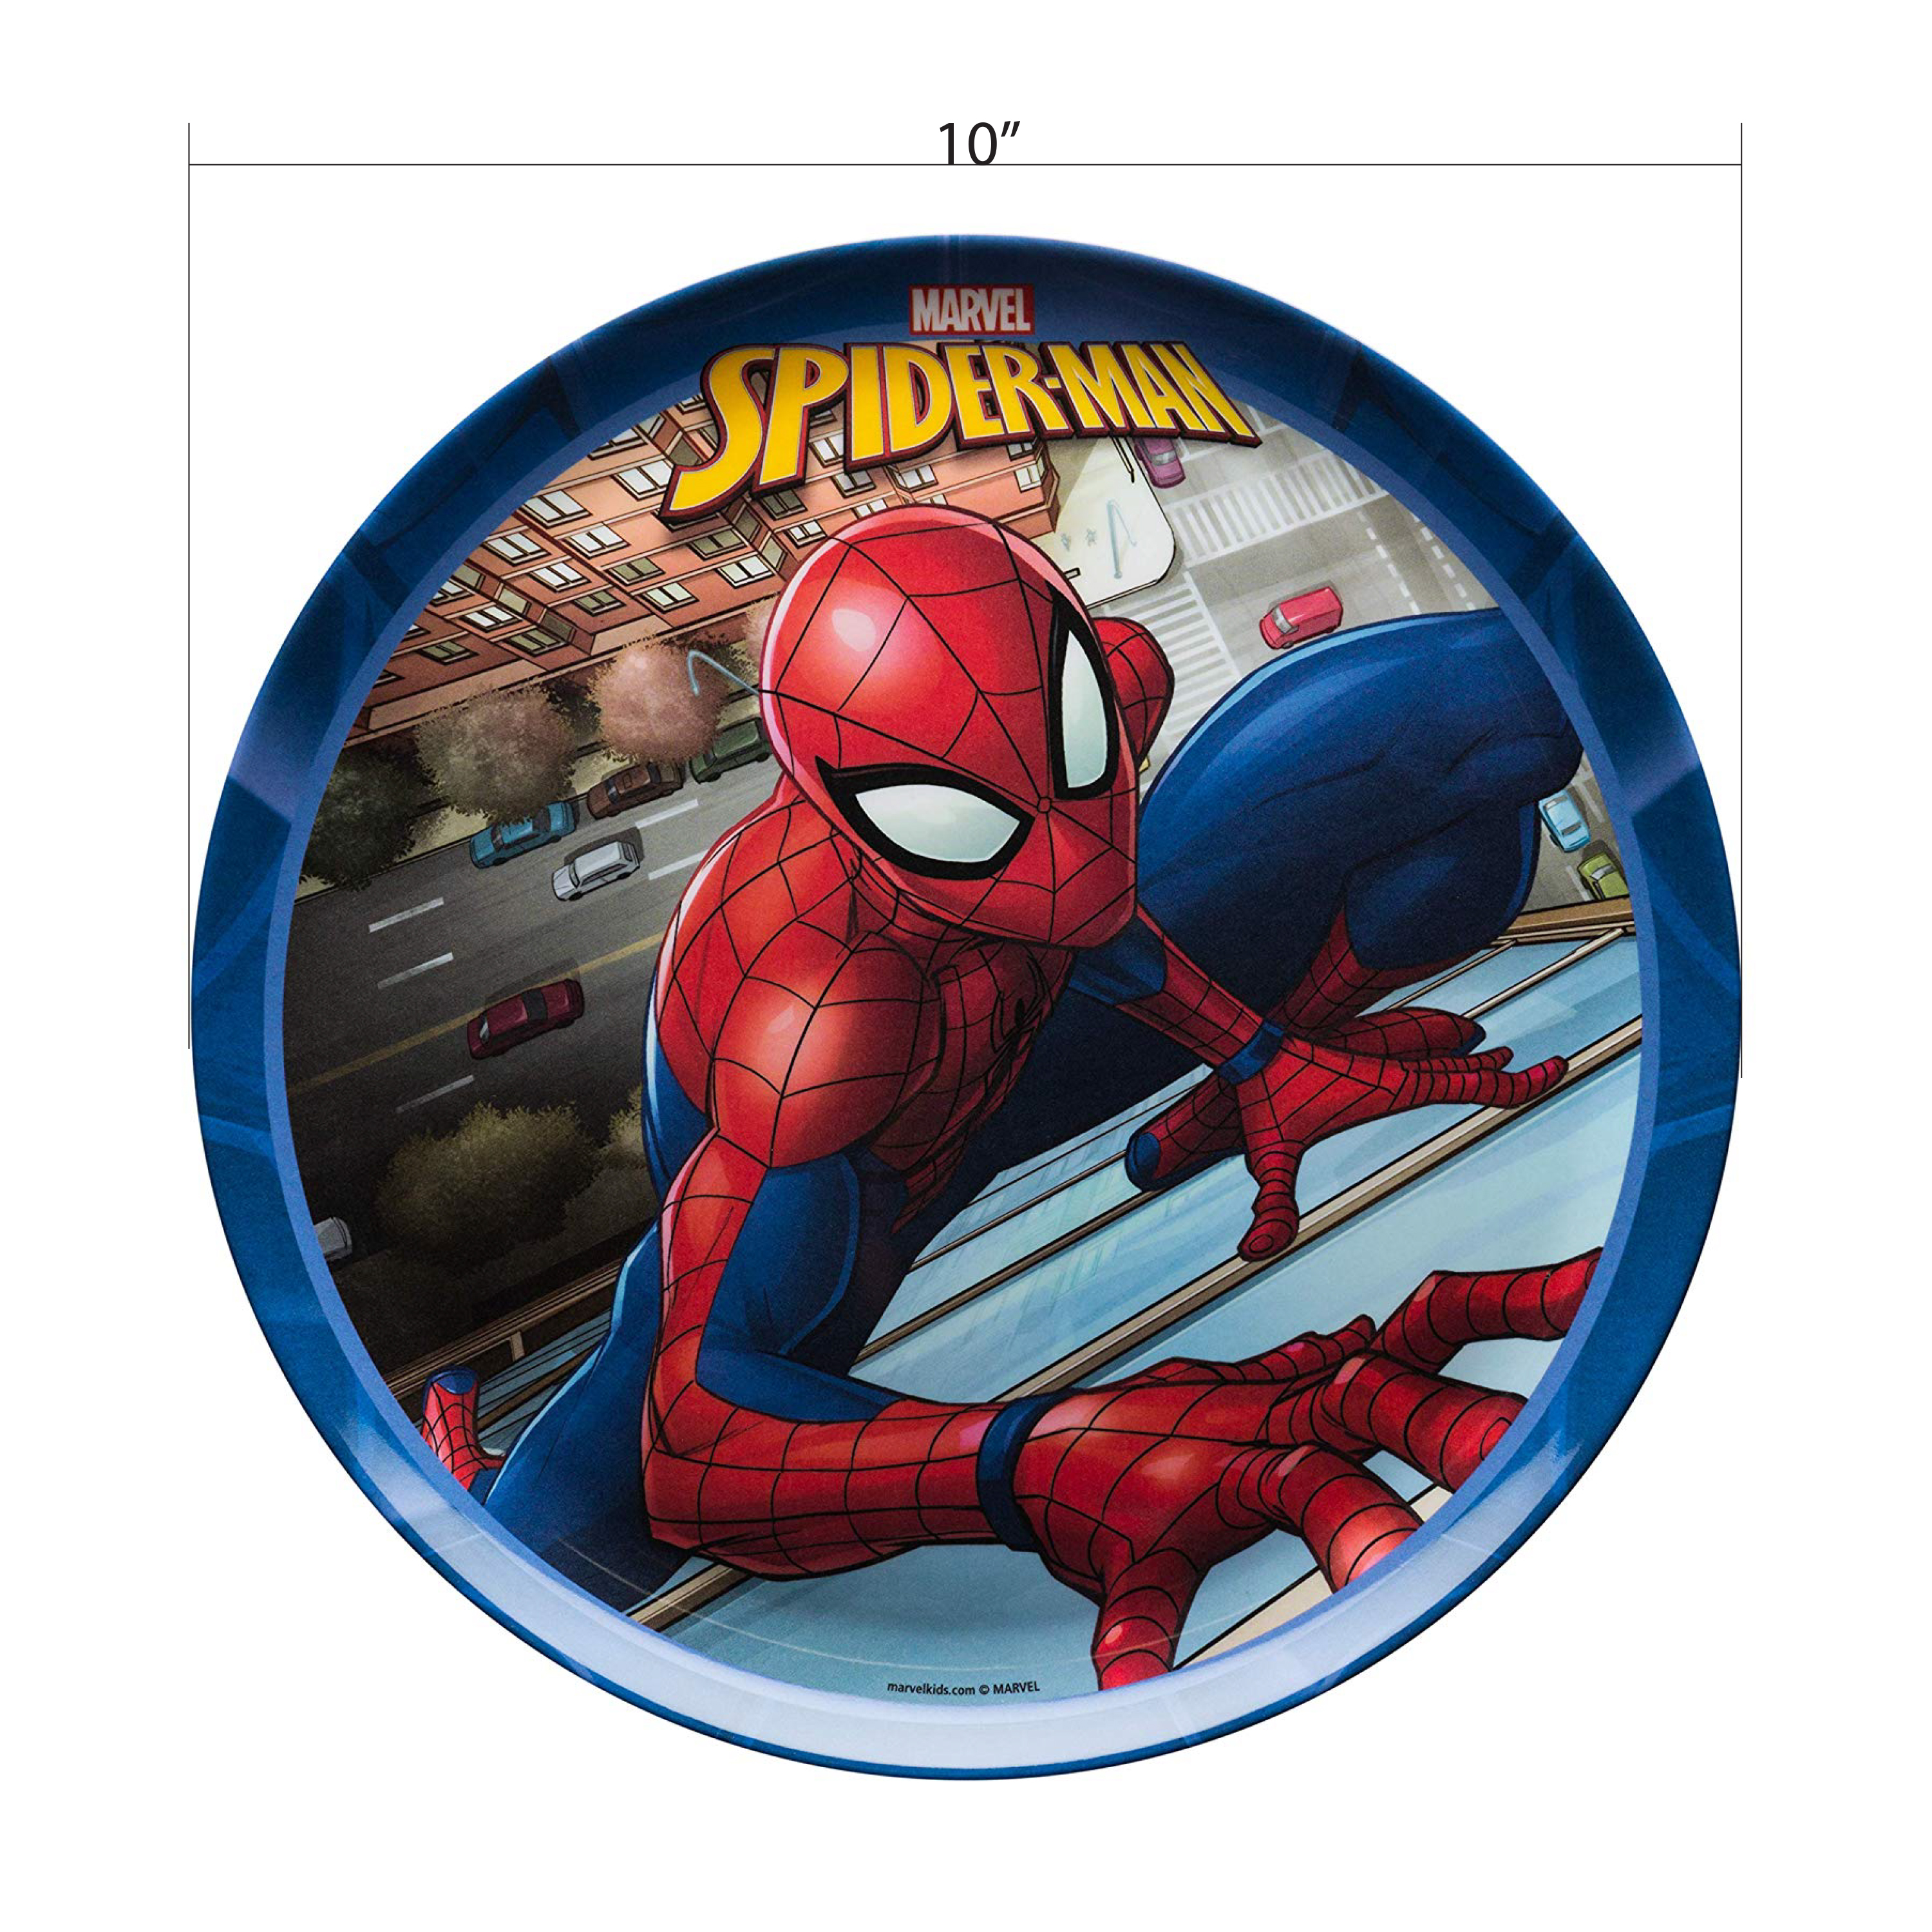 Marvel Comics Dinnerware Set, Spider-Man, 2-piece set slideshow image 6